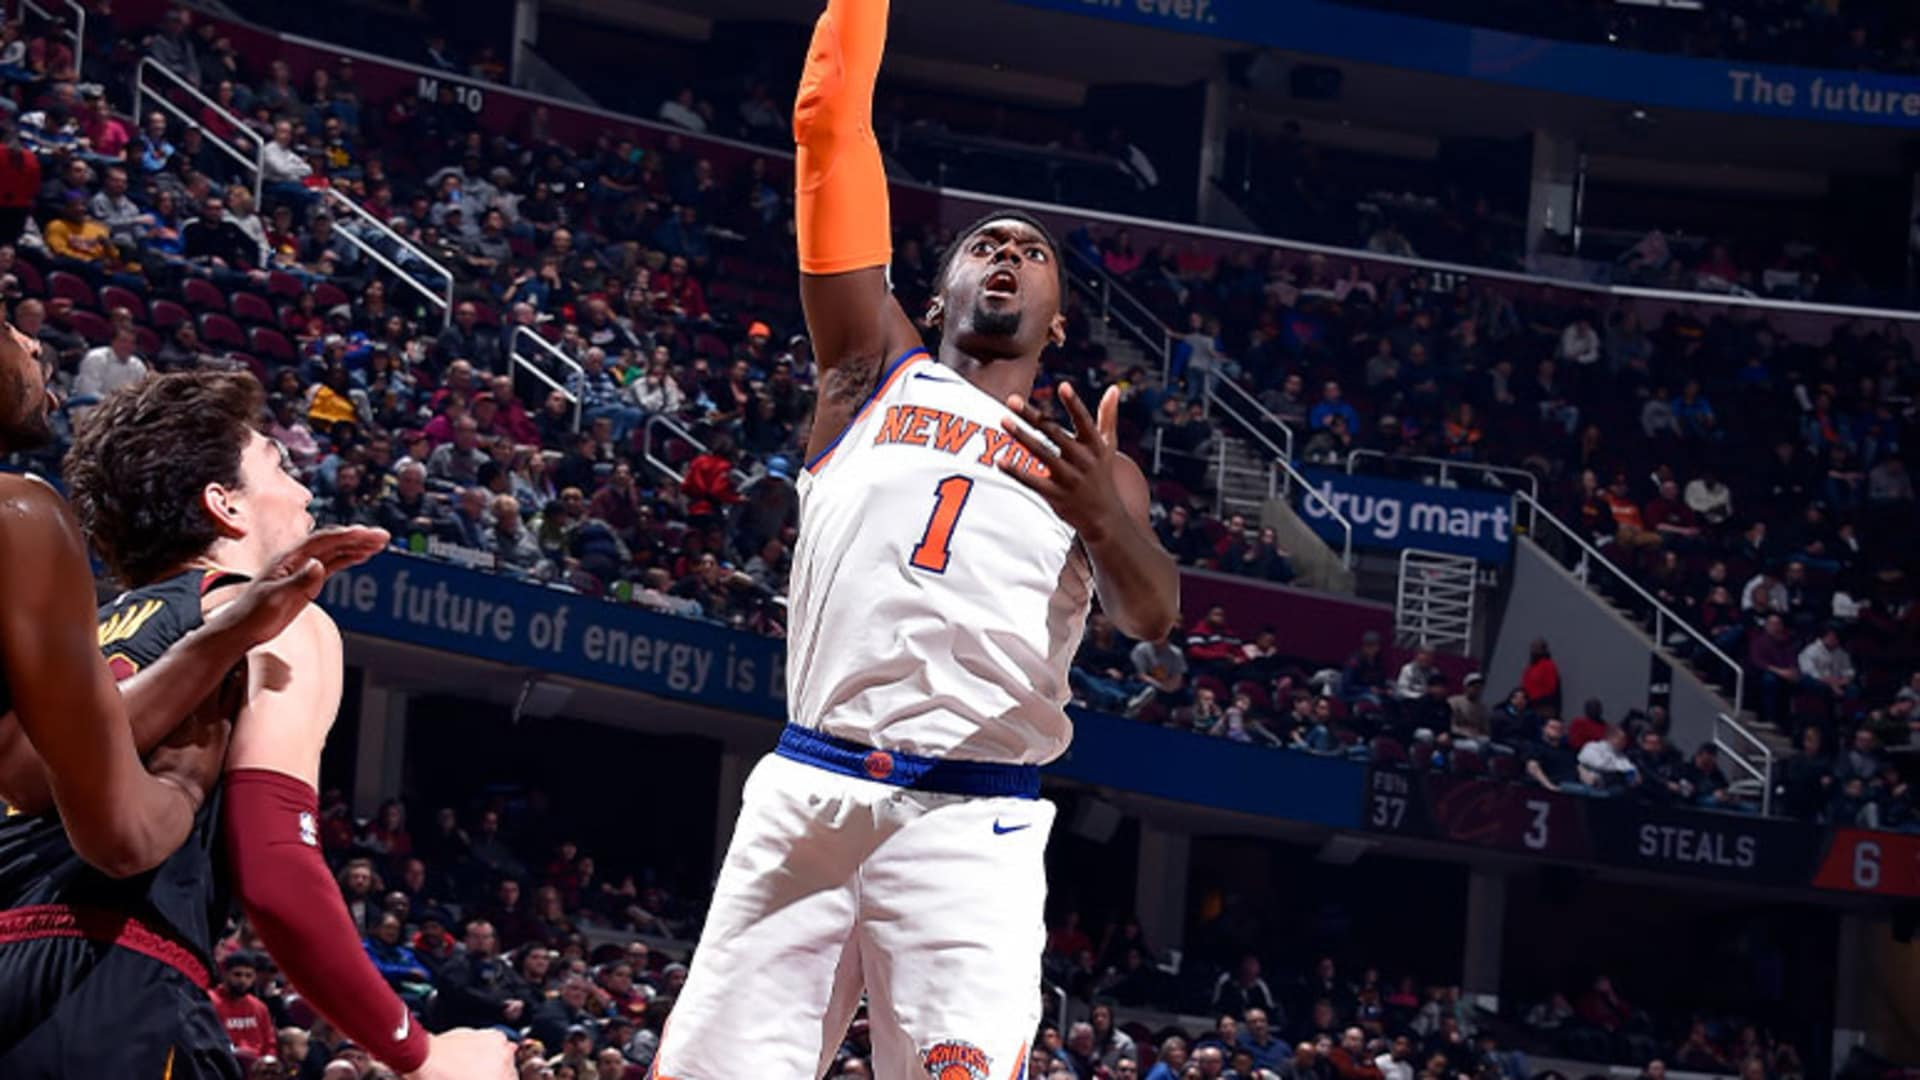 Highlights: Bobby Portis (12 Points) | Knicks @ Cavaliers